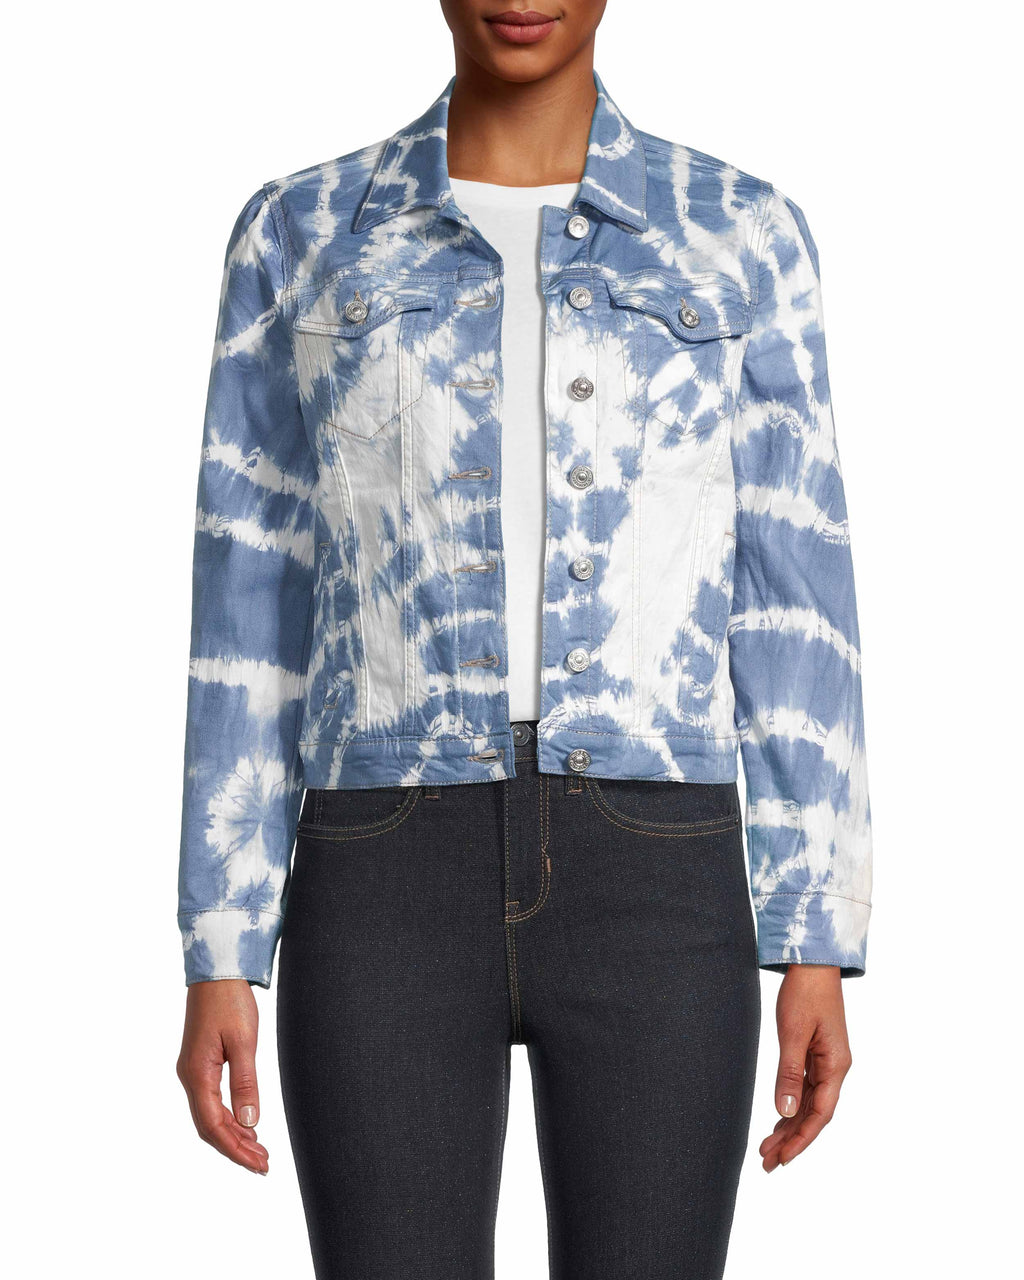 CJ18725 - TIE DYE DENIM JACKET - outerwear - jackets - The classic denim jacket - but with a twist. Our tie dye denim jacket has a slightly croppped silhouette and a puff sleeve for modern details. Add 1 line break Stylist Tip: Throw on over one of our printed dresses for a standout look.